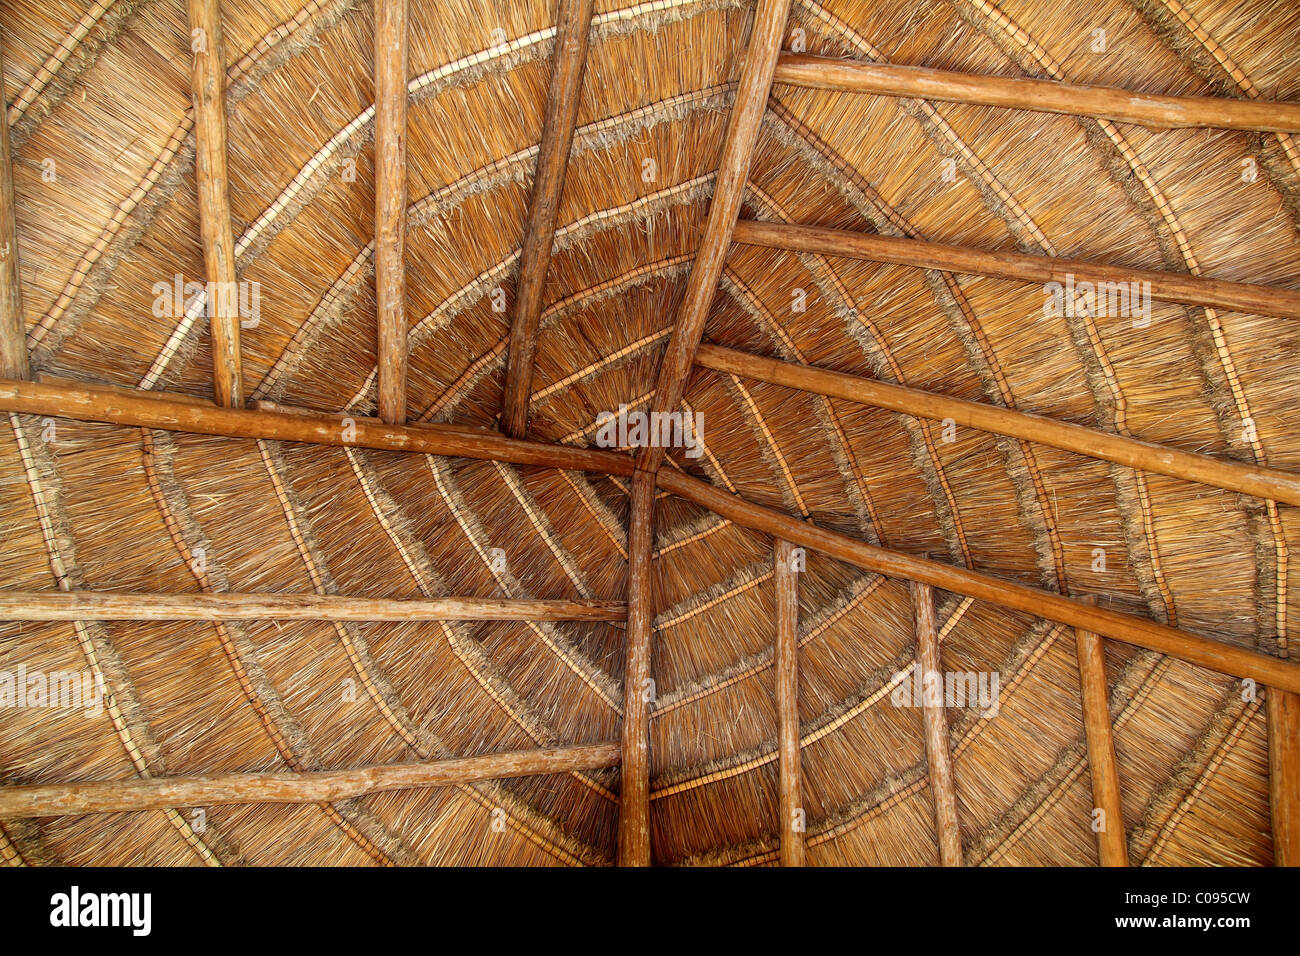 palapa tropical Mexico wood cabin roof detail indoor - Stock Image